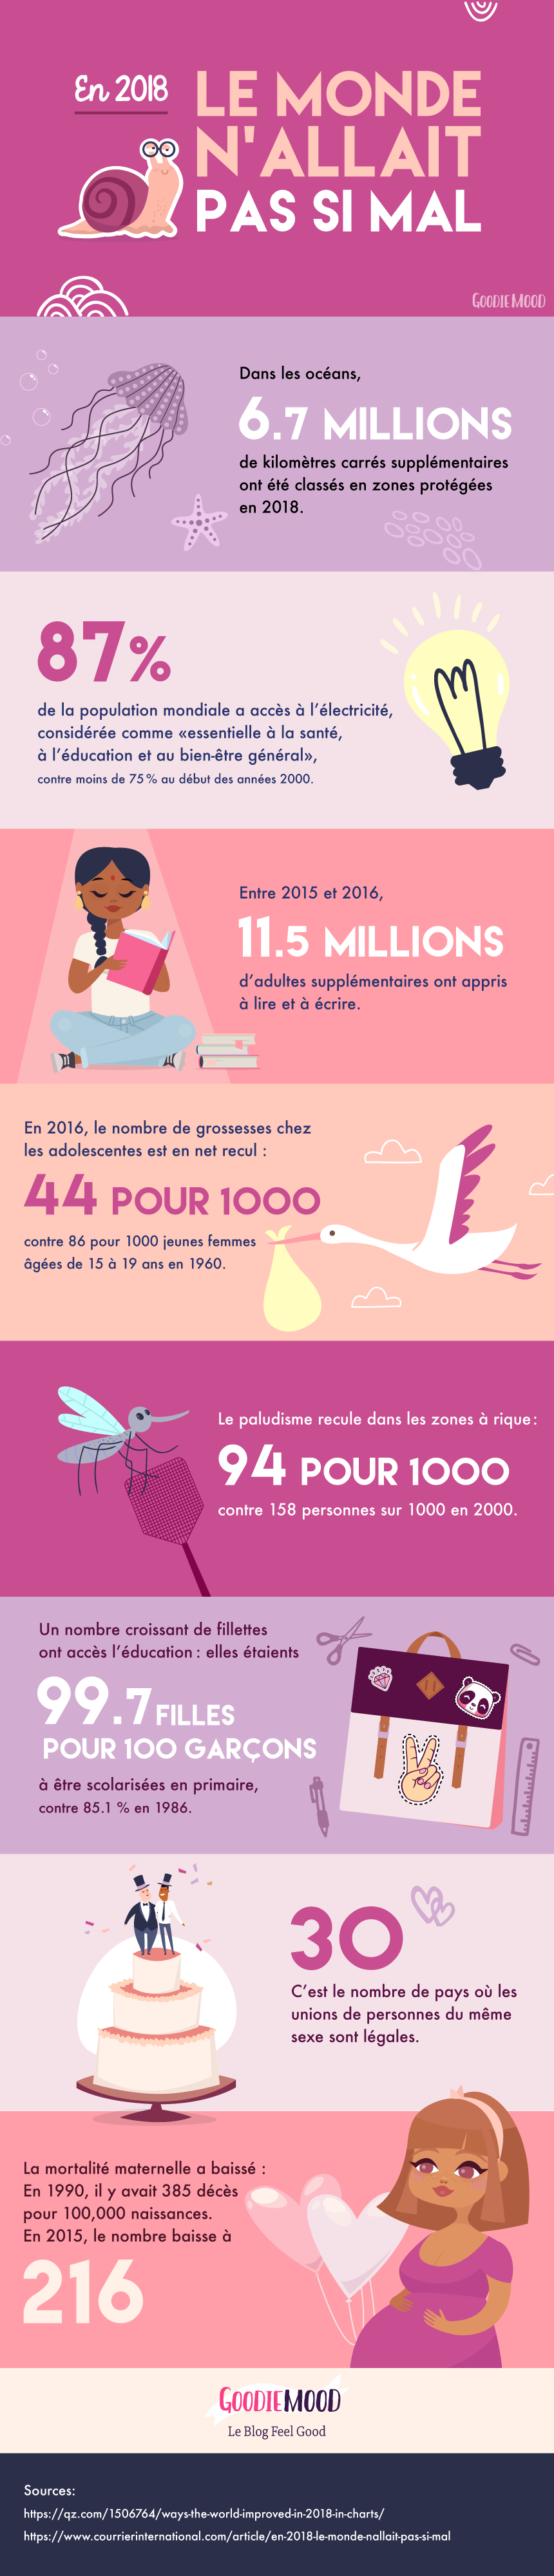 🕺🏻 Infographie sur les bonnes nouvelles de 2018 pour rester optimiste ! Sur Goodie Mood le Blog Feel Good 💗 #infographie #courrierinternational #graphisme #illustration #optimisme #sourire #feelgood